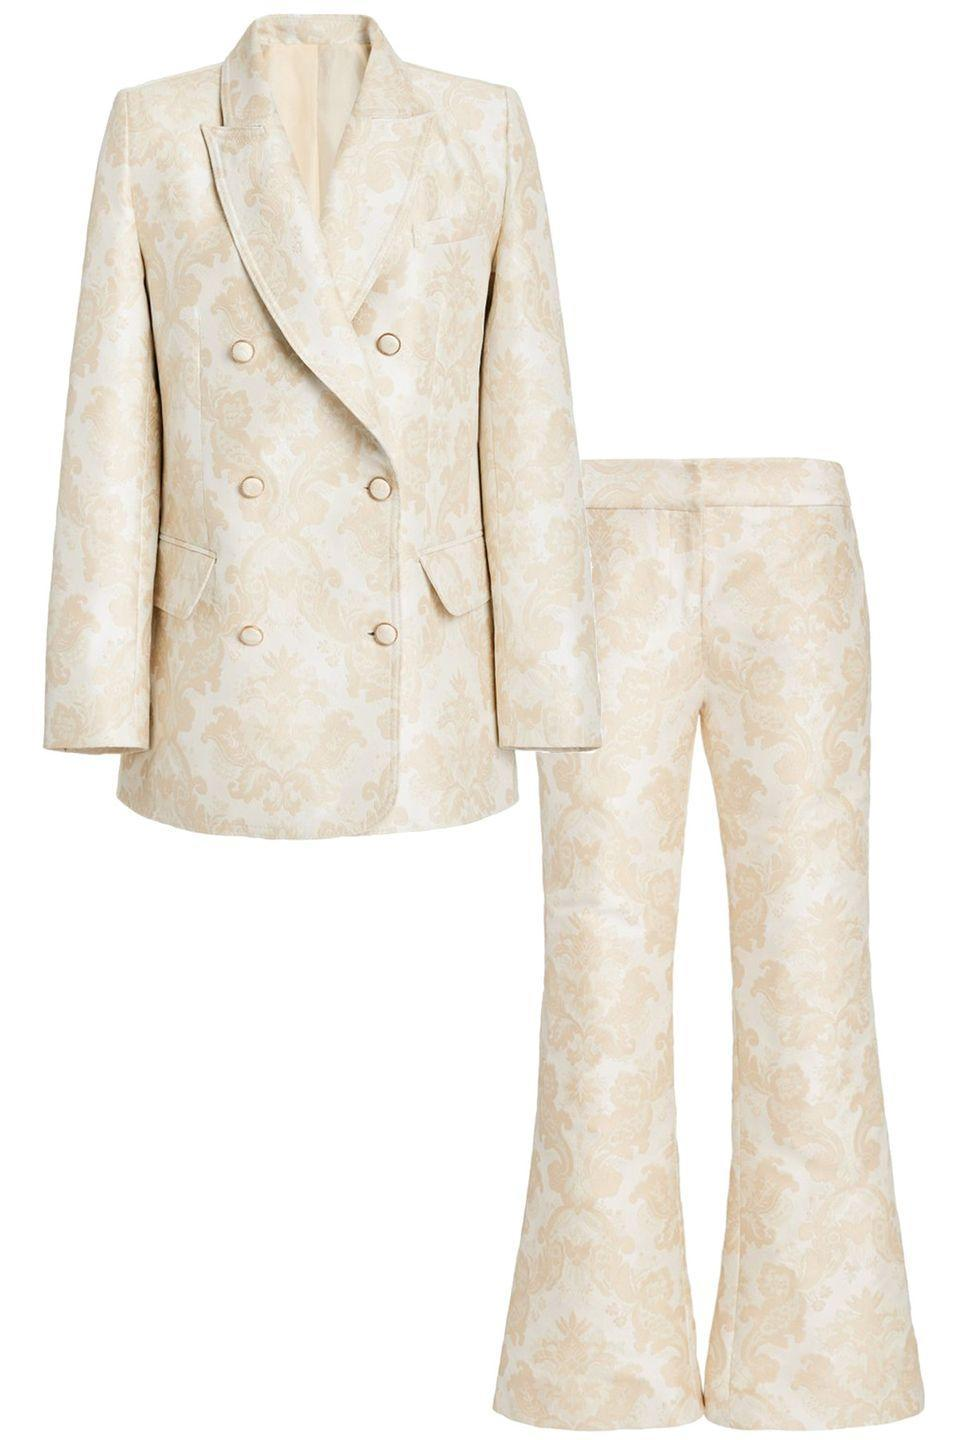 """<p>Known for their flowing floral dresses, Zimmermann does a great suit as well. The subtle golden brocade makes it feel extra special. </p><p><br><a href=""""https://go.skimresources.com?id=74968X1525087&xs=1&url=https%3A%2F%2Fwww.modaoperandi.com%2Fwomen%2Fp%2Fzimmermann%2Fcharm-double-breasted-blazer%2F435174"""" rel=""""nofollow noopener"""" target=""""_blank"""" data-ylk=""""slk:Zimmermann Blazer"""" class=""""link rapid-noclick-resp""""><br>Zimmermann Blazer</a><a href=""""https://go.skimresources.com?id=74968X1525087&xs=1&url=https%3A%2F%2Fwww.modaoperandi.com%2Fwomen%2Fp%2Fzimmermann%2Fcharm-brocade-flare-pants%2F435176"""" rel=""""nofollow noopener"""" target=""""_blank"""" data-ylk=""""slk:Zimmermann Pant"""" class=""""link rapid-noclick-resp""""><br>Zimmermann Pant</a></p>"""